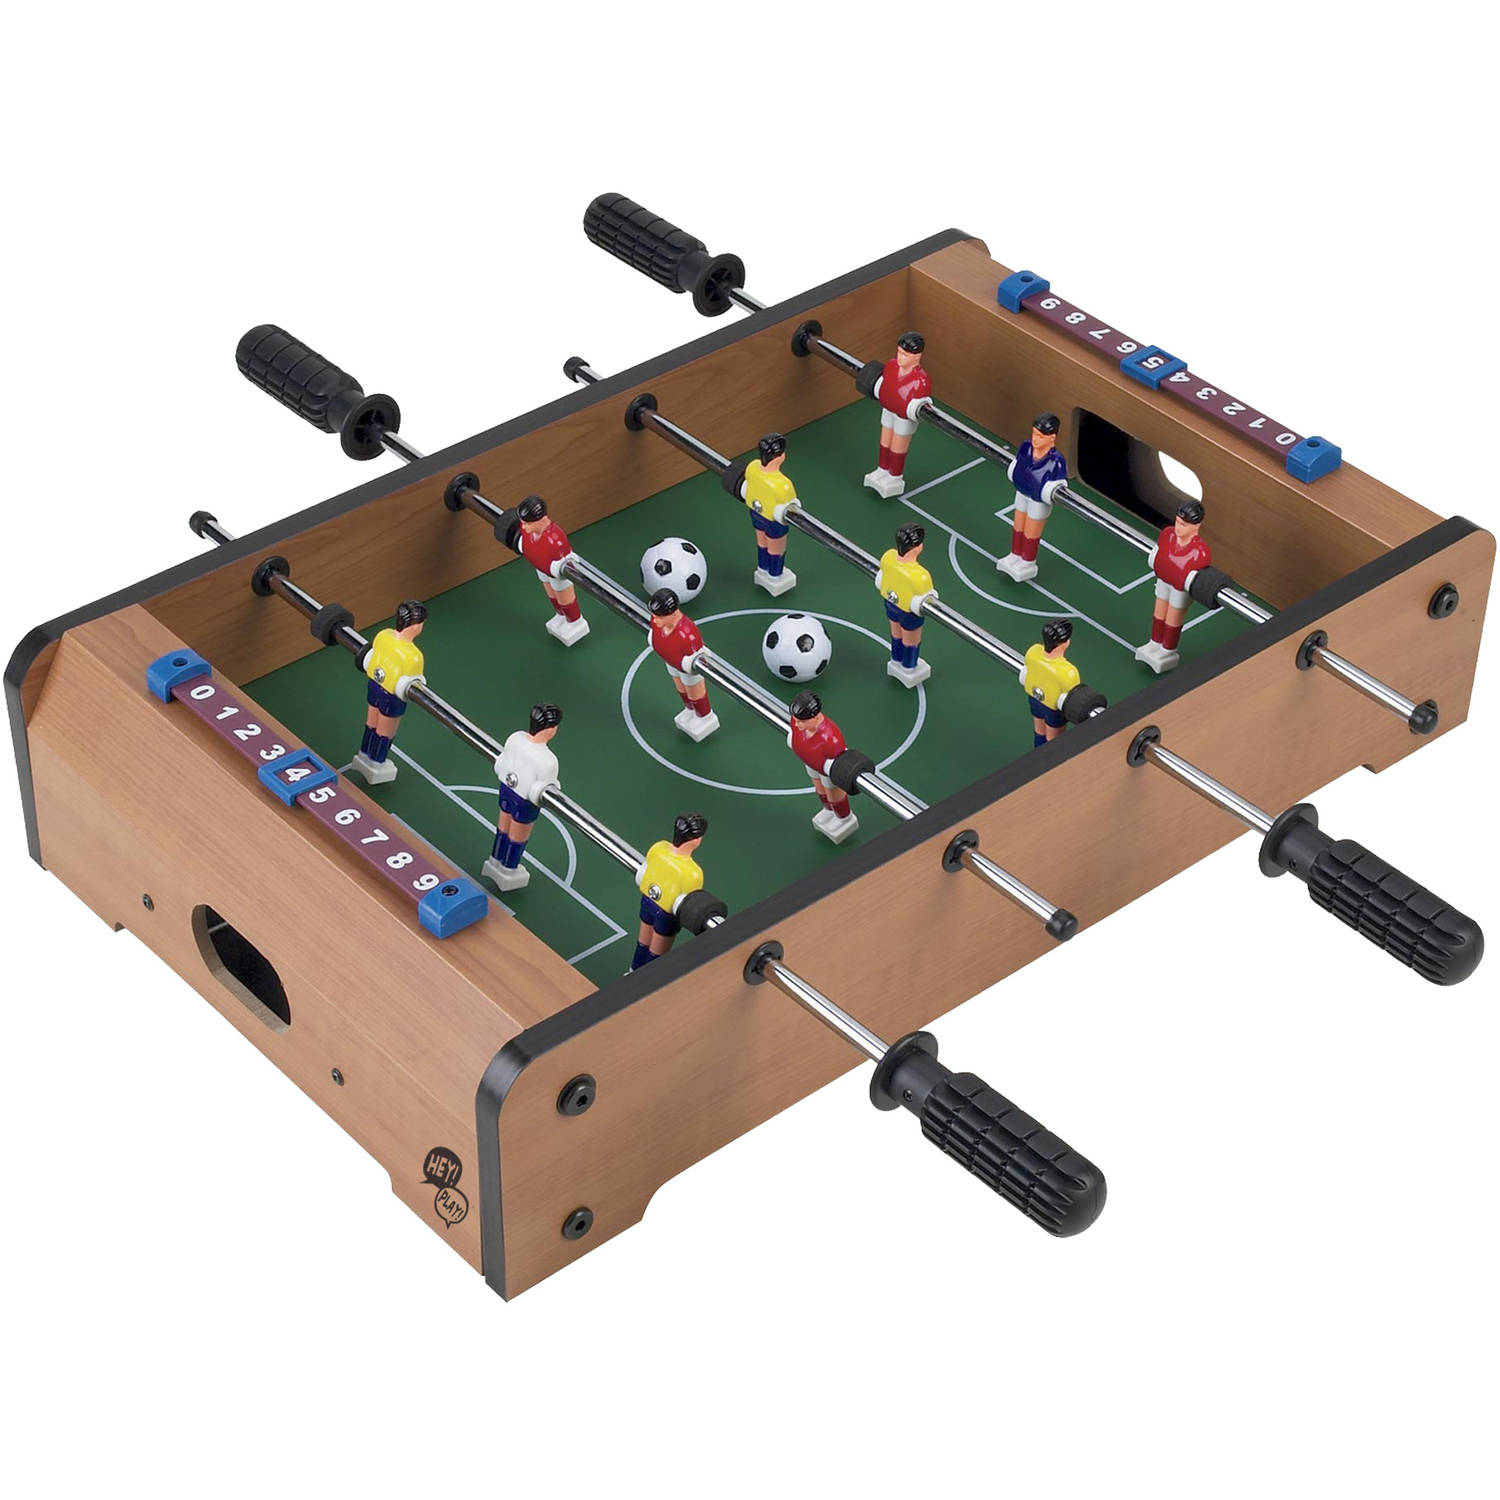 Trademark Games Mini Table Top Foosball with Accessories Walmart